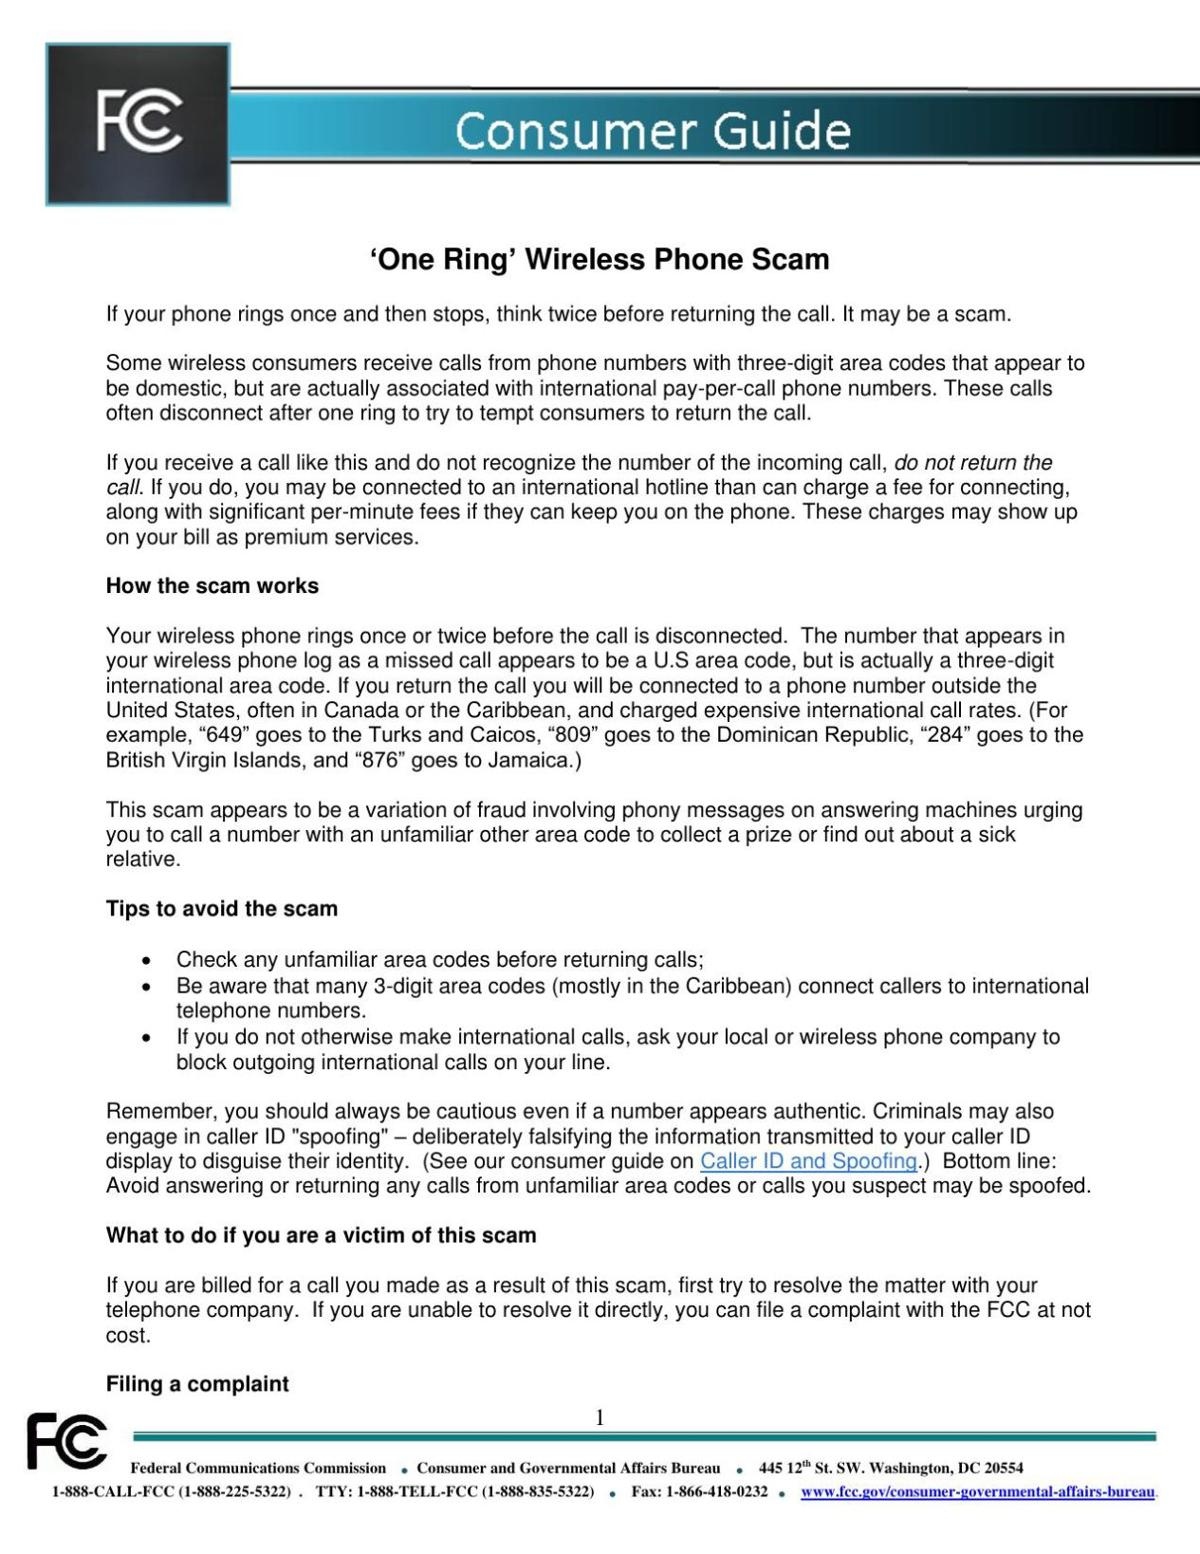 'One Ring' Wireless Phone Scam